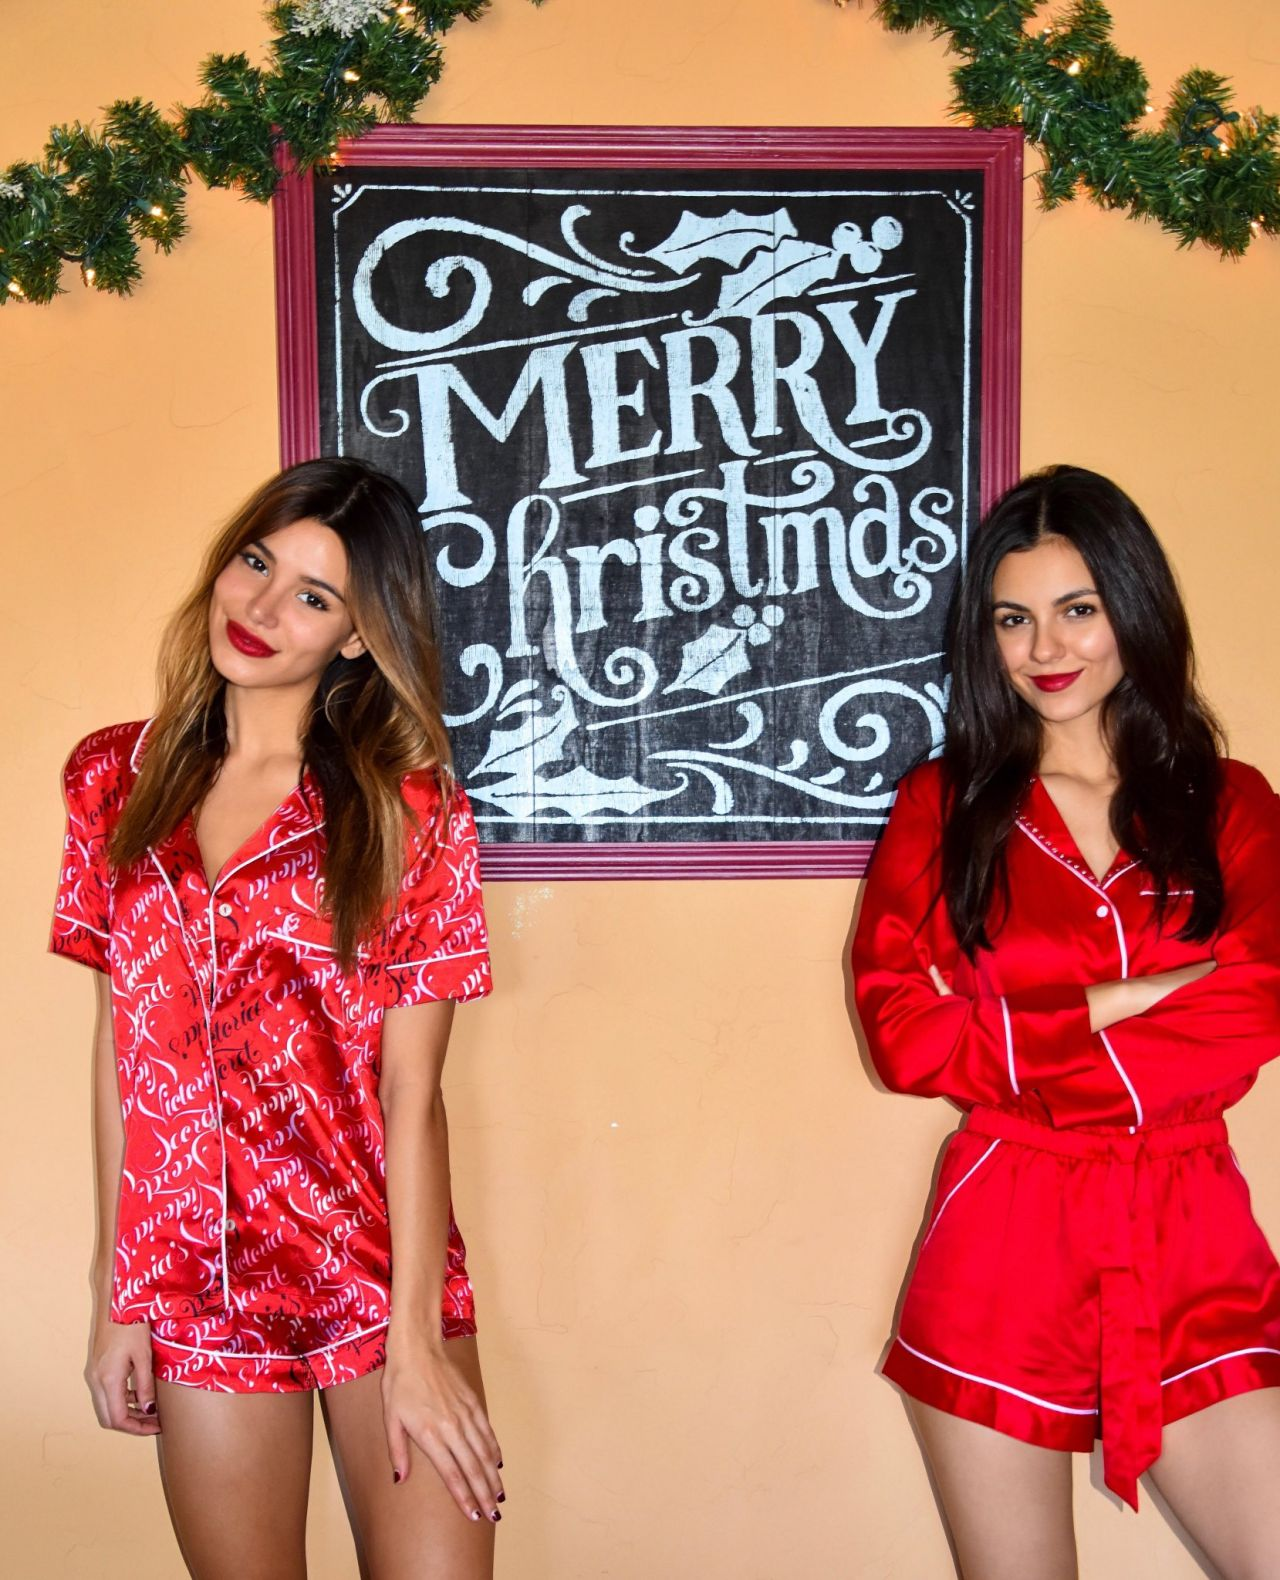 Madison Reed and Victoria Justice - Personal Photos 12/26